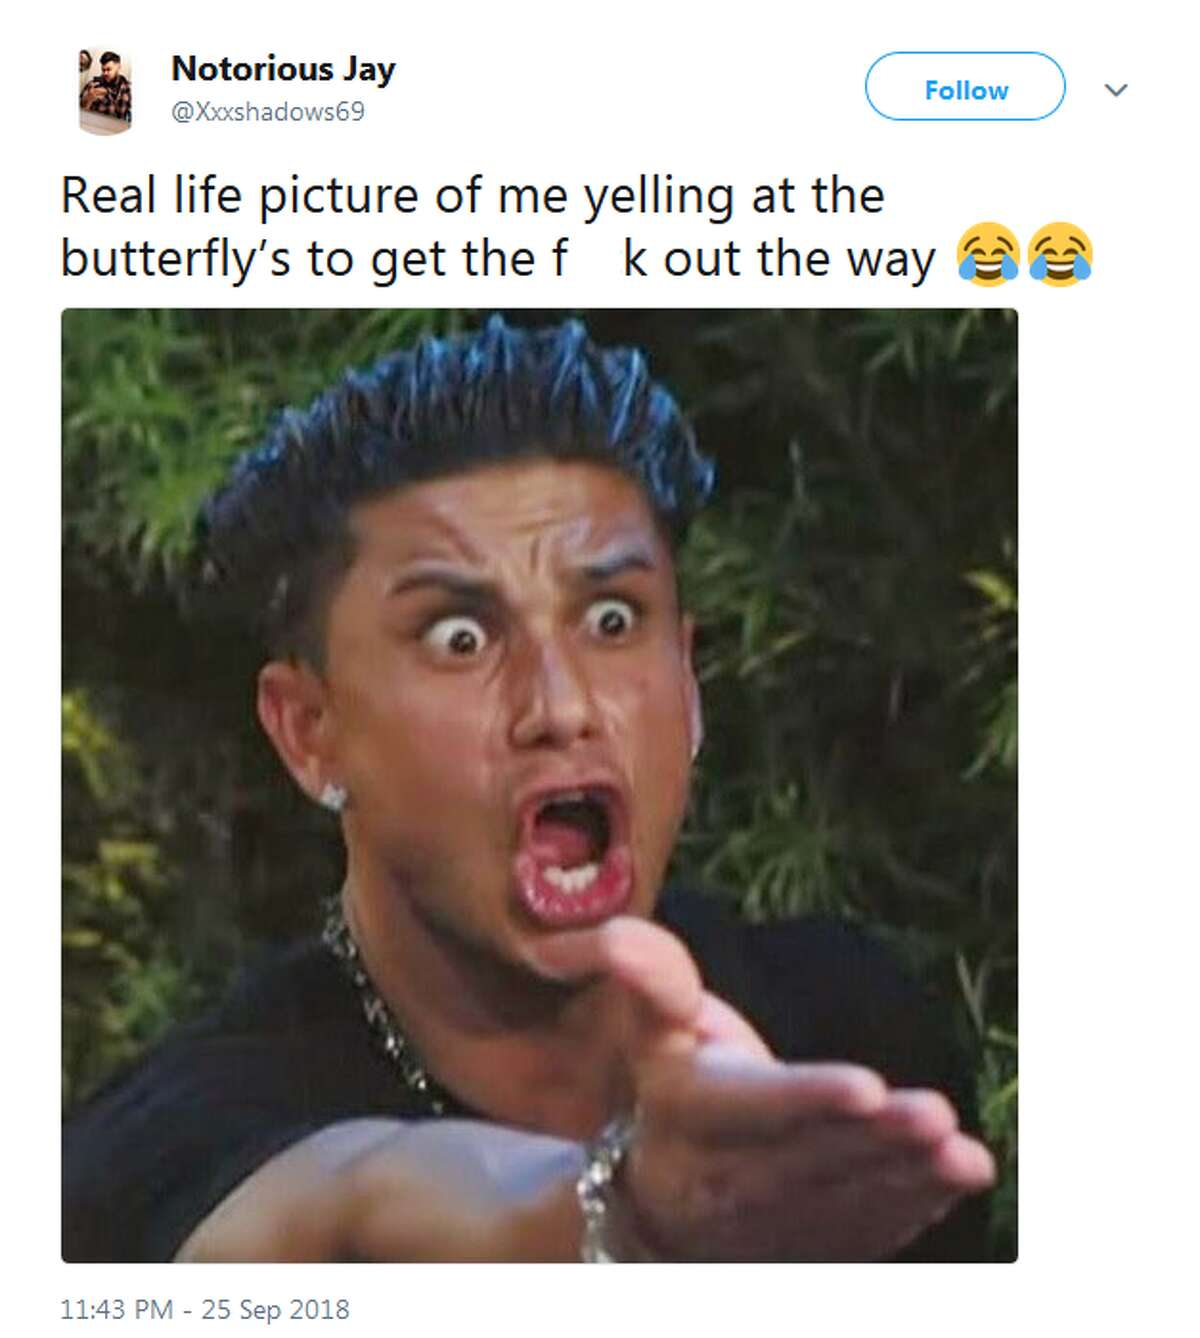 @Xxxshadows69: Real life picture of me yelling at the butterfly's to get the f--k out the way